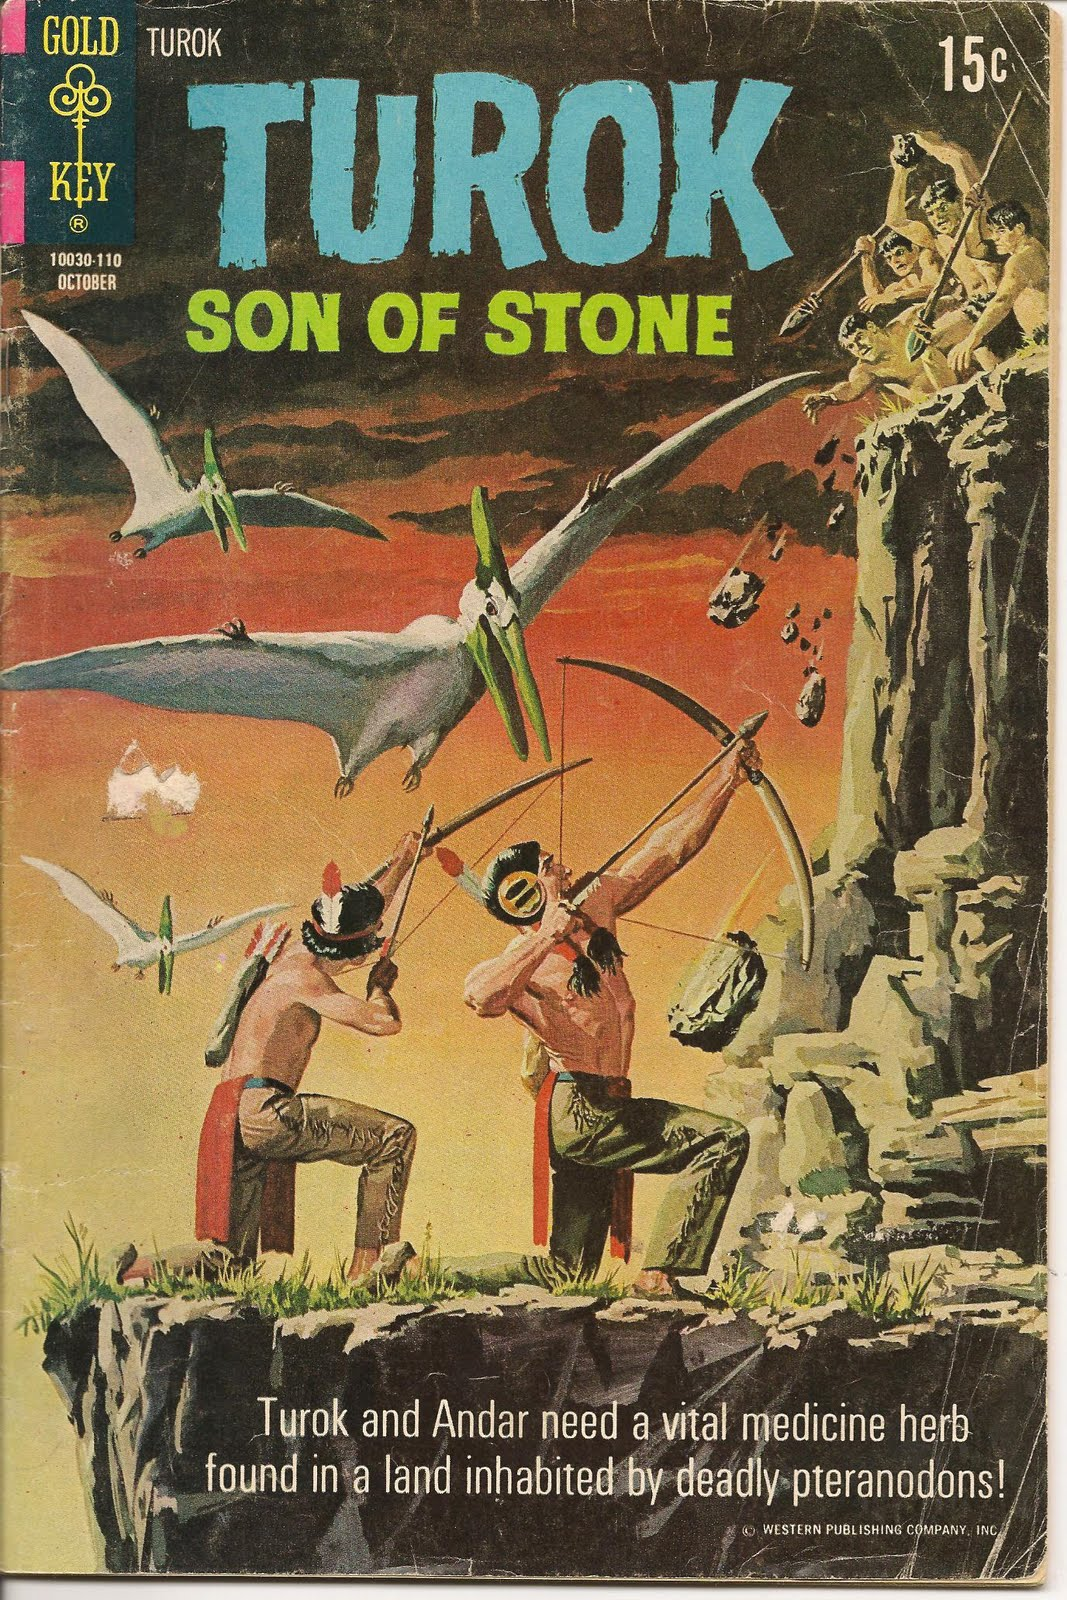 Silver Age Gold: Why I love Turok, Son of Stone